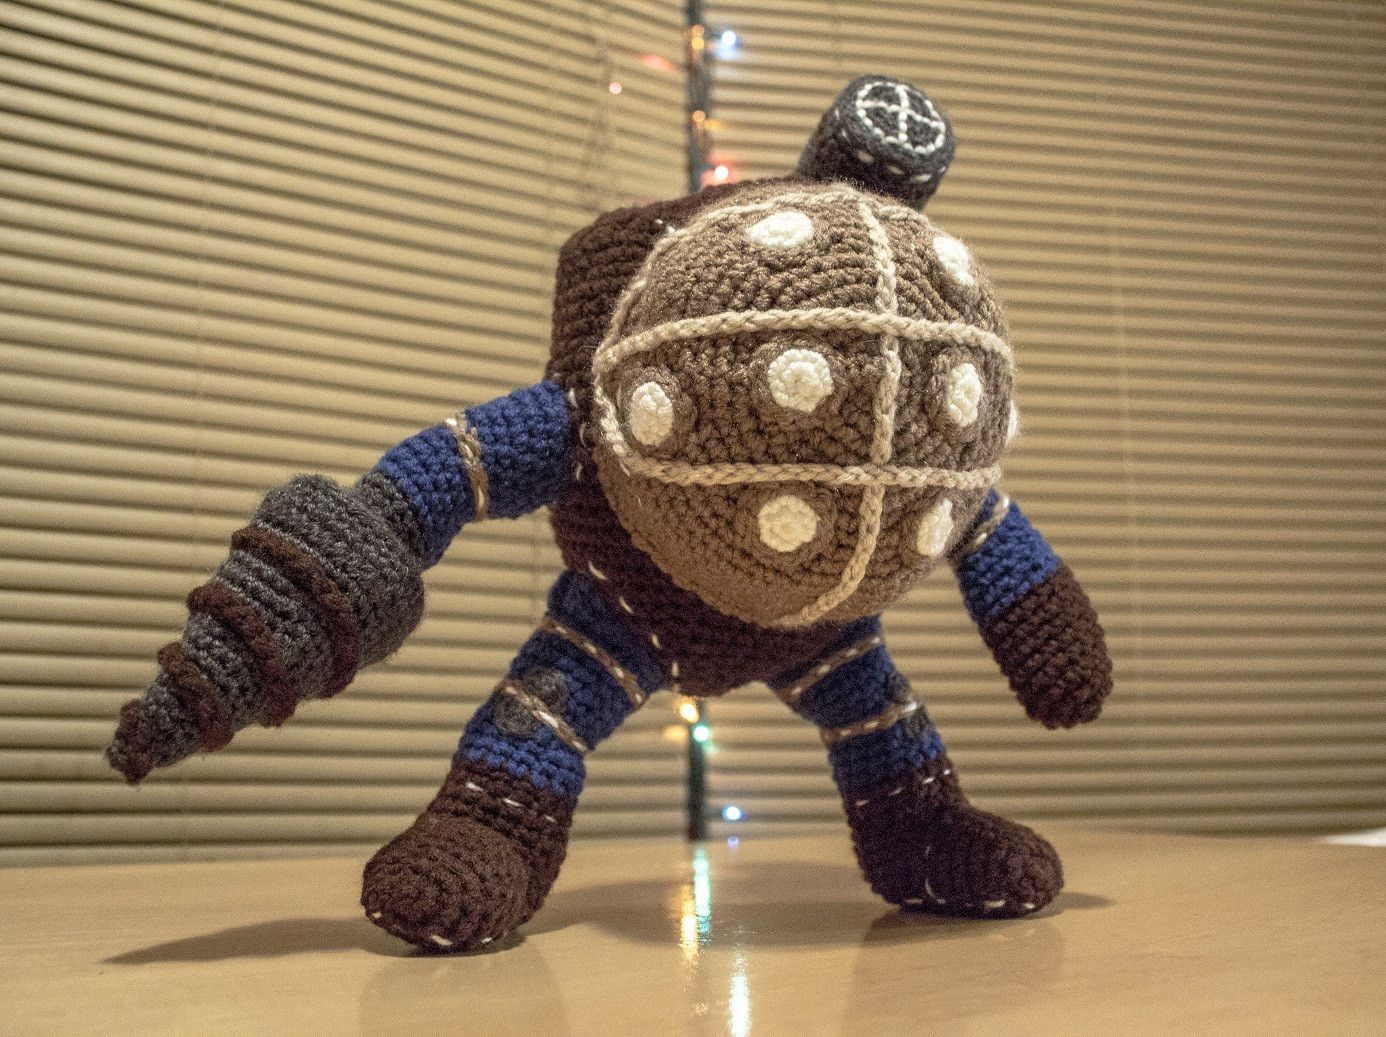 Crochet Amigurumi Bioshock Big Daddy Doll